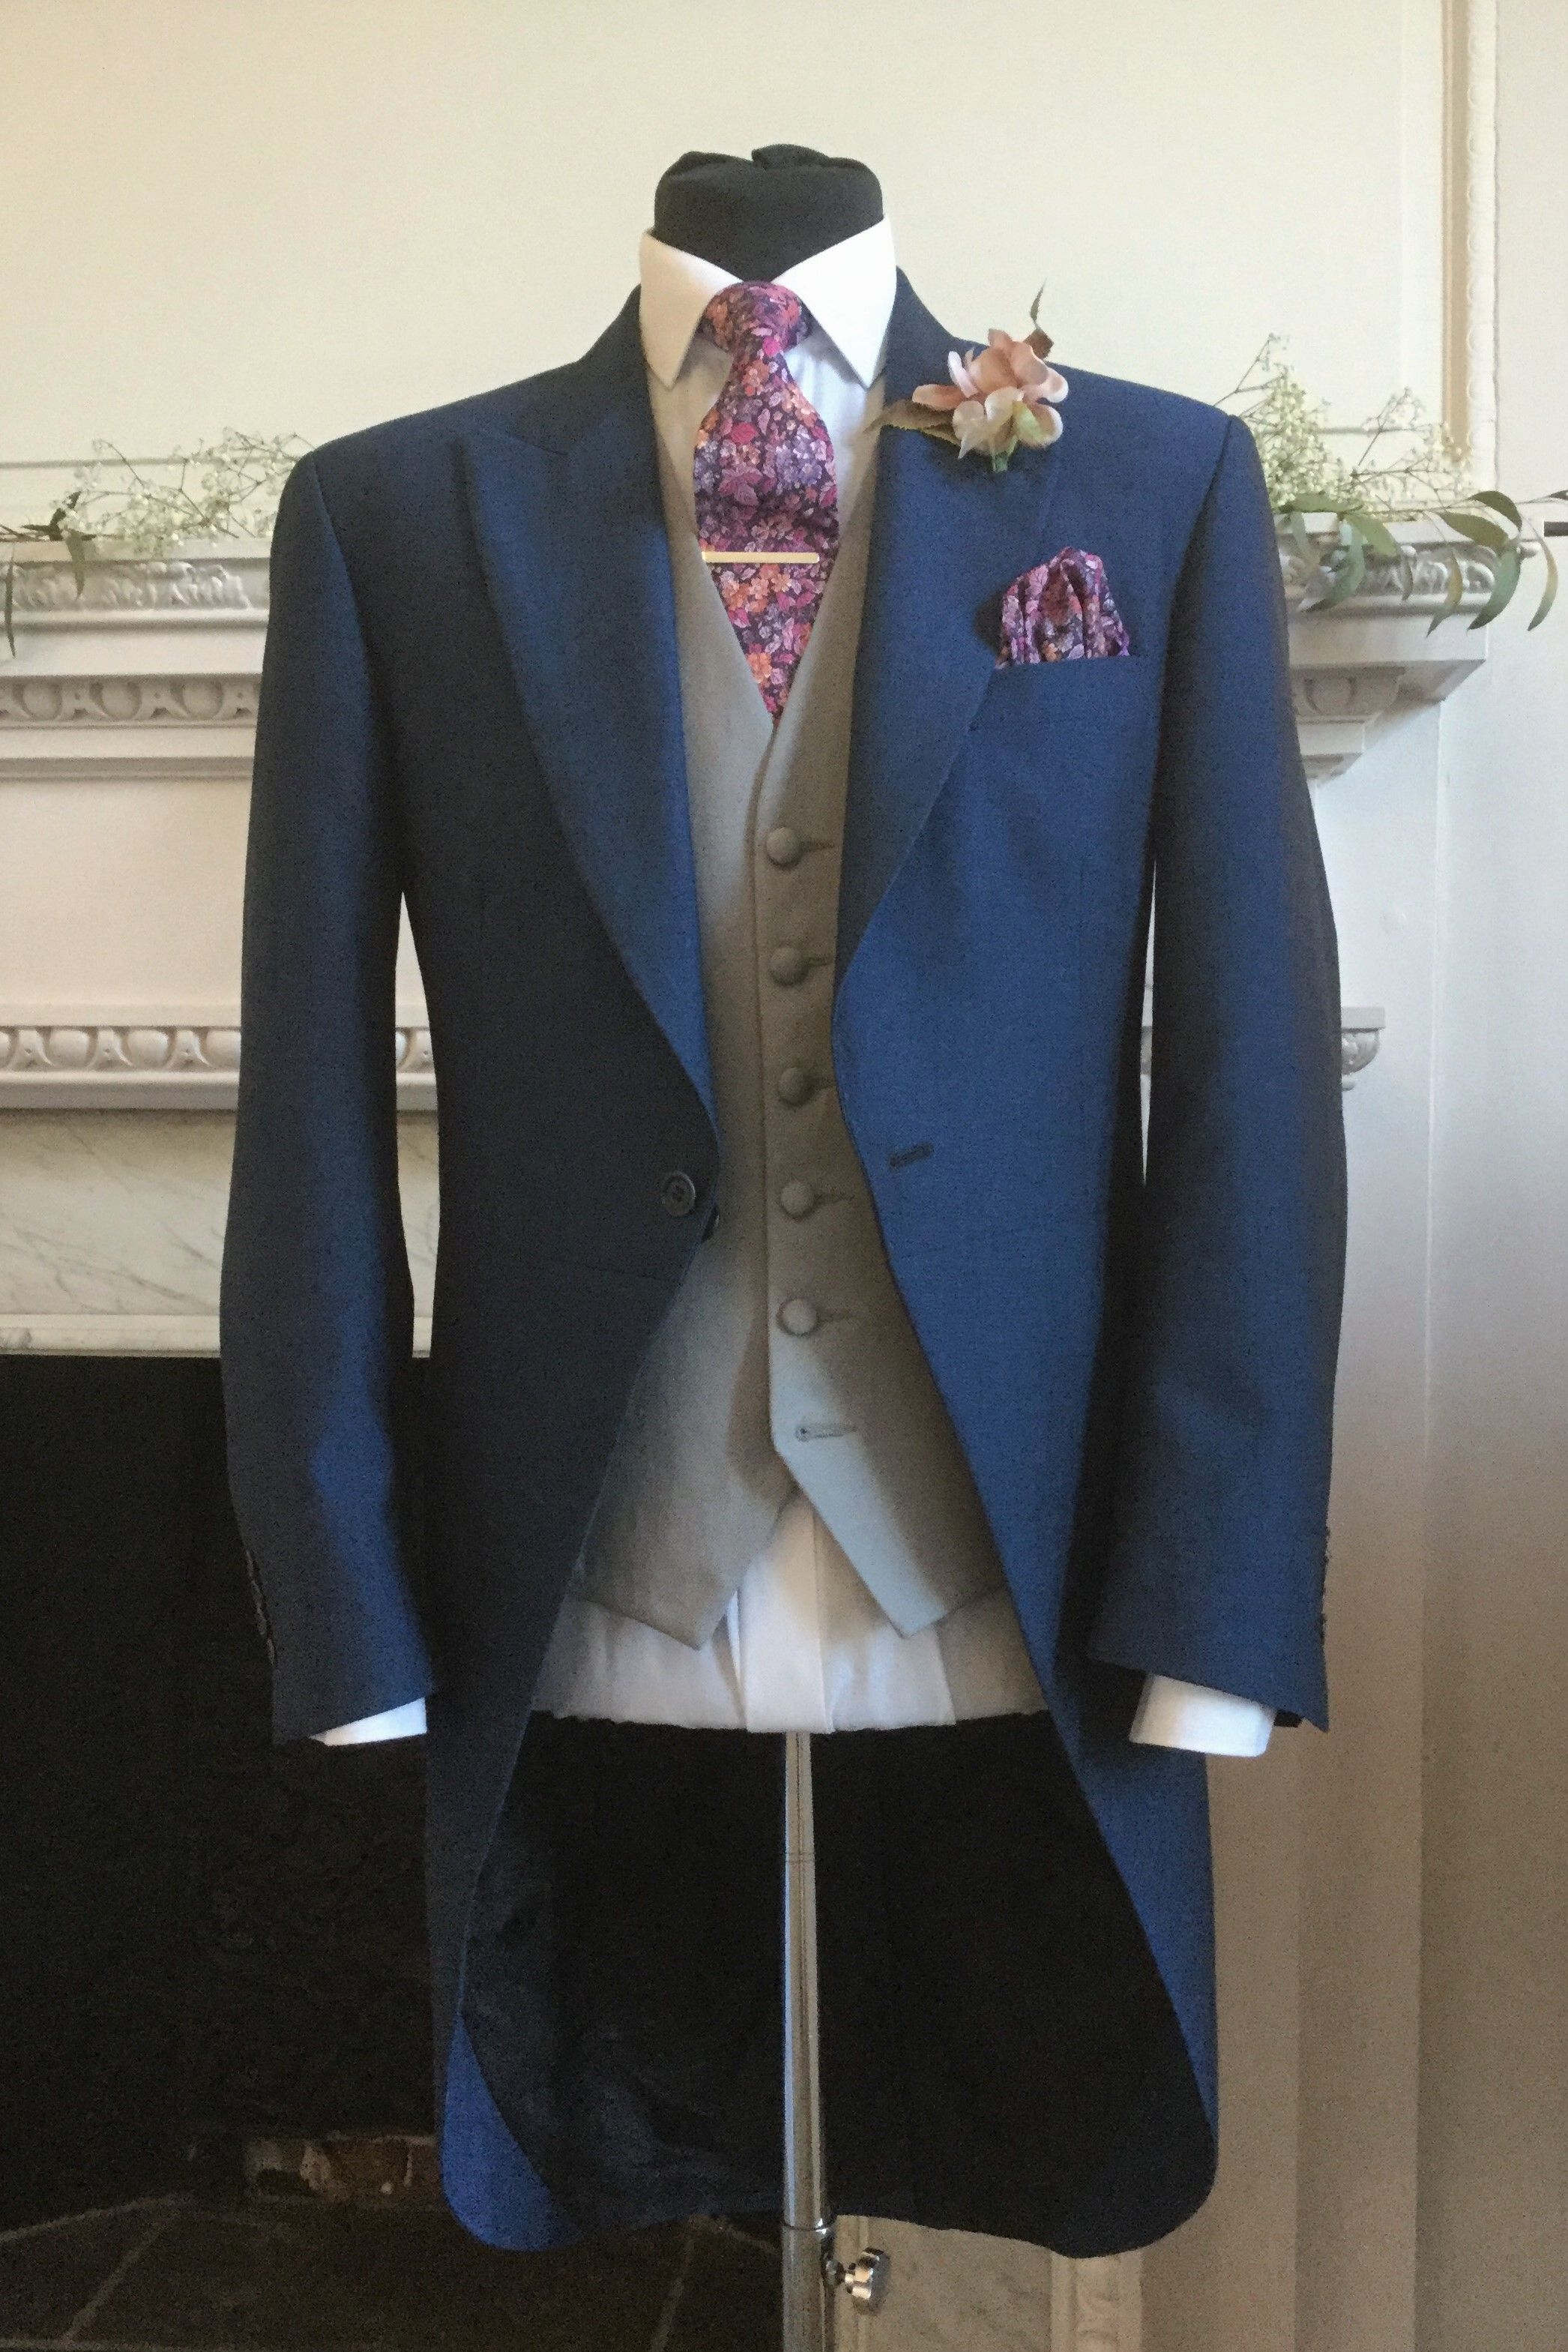 Morning Suits Hire in Berkshire and Hampshire (With images